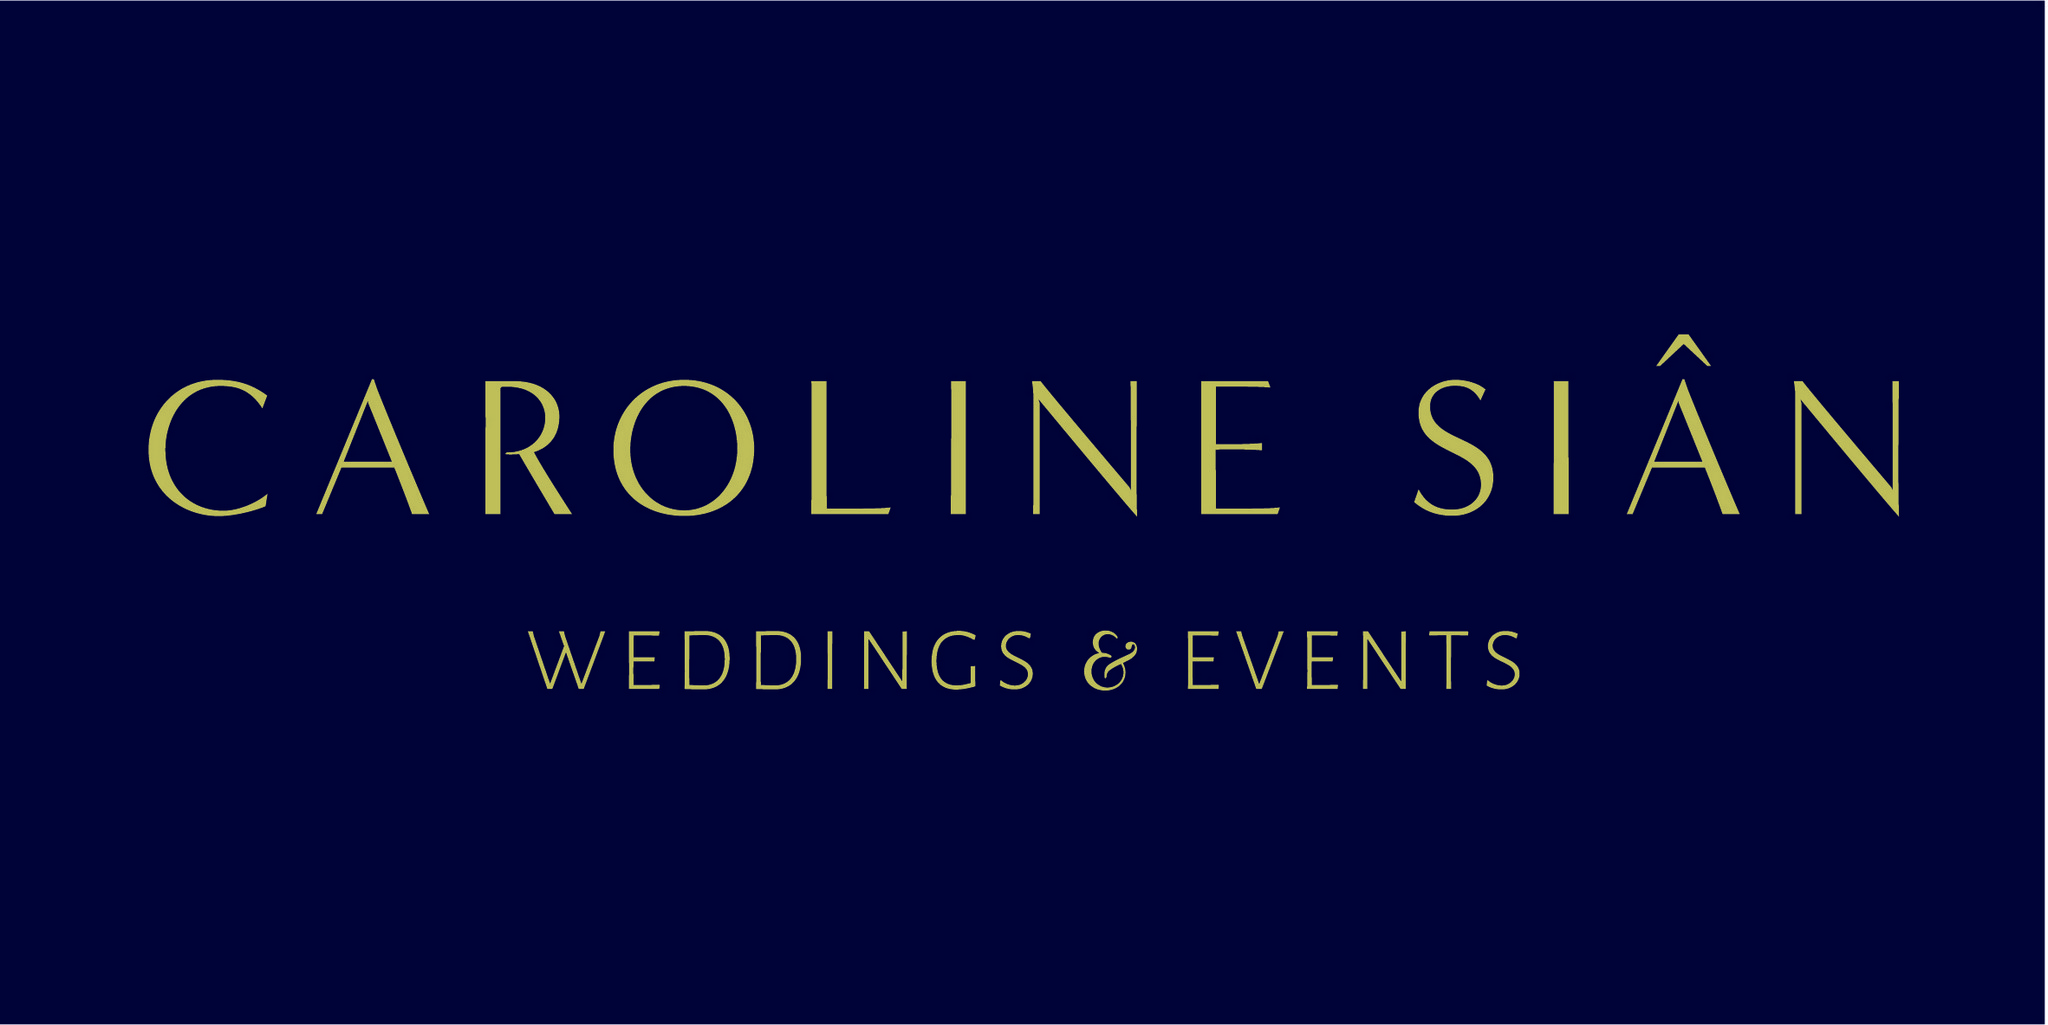 Caroline Sian Wedding Planner London Logo